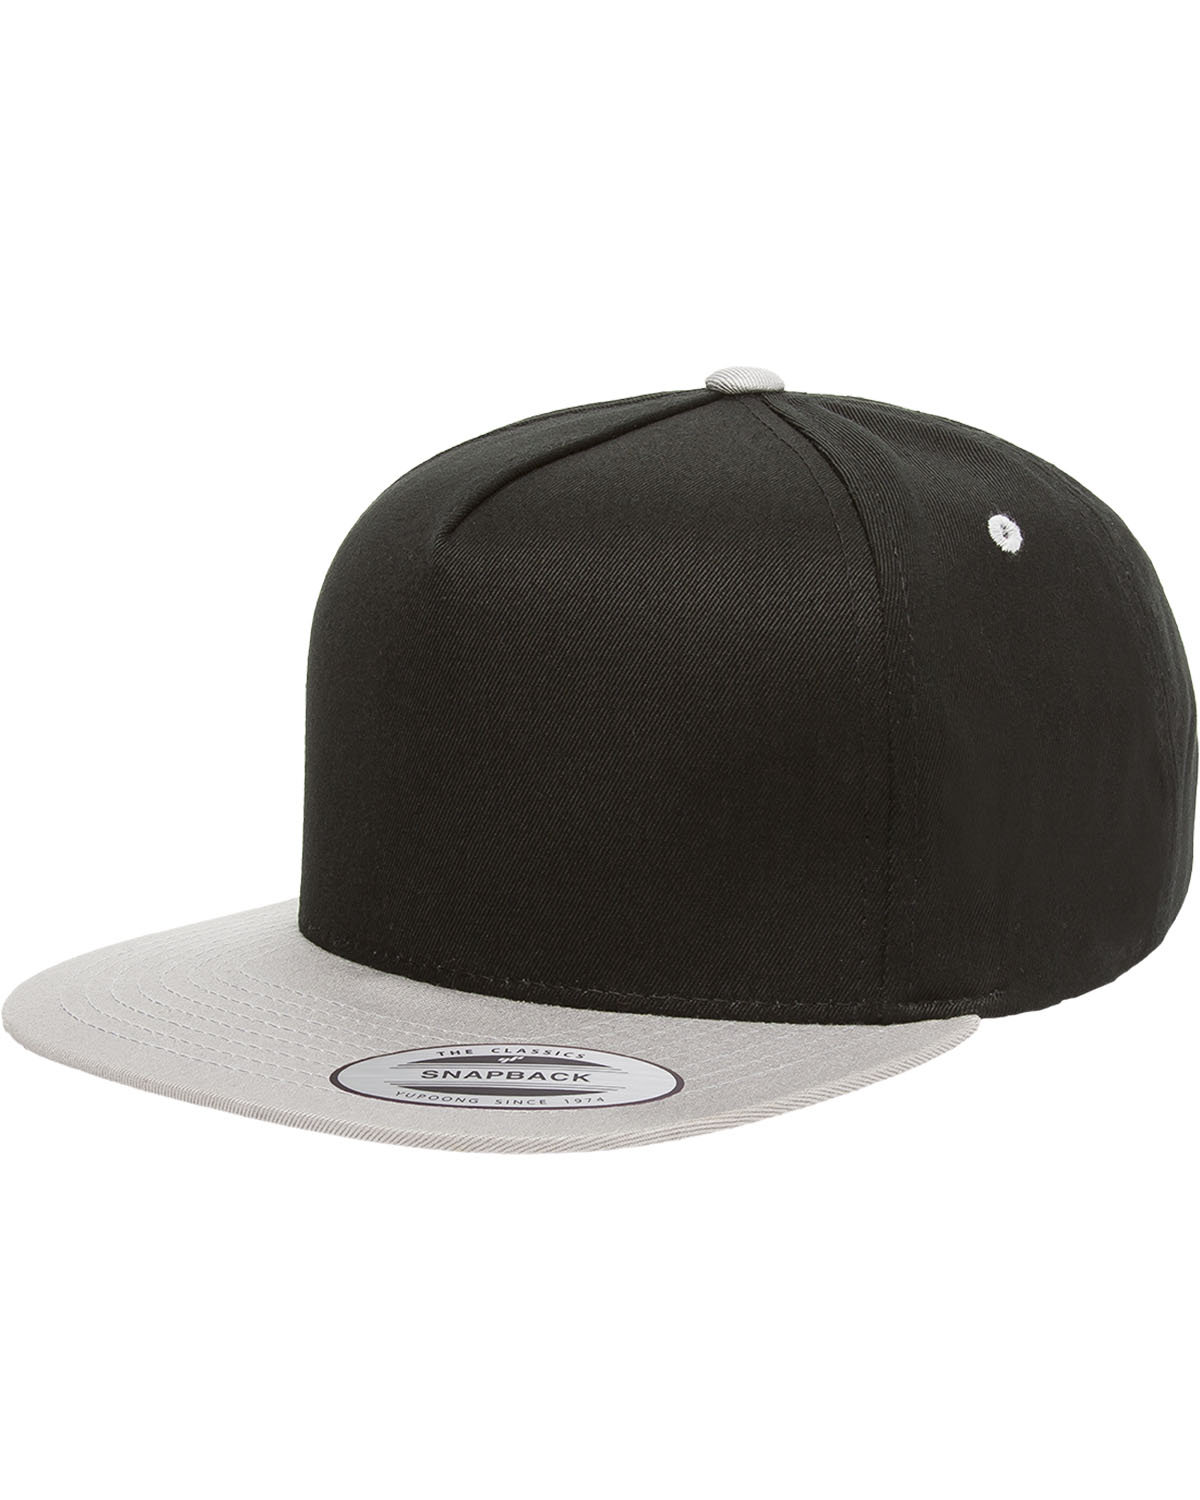 Yupoong Adult 5-Panel Cotton Twill Snapback Cap BLACK/ SILVER